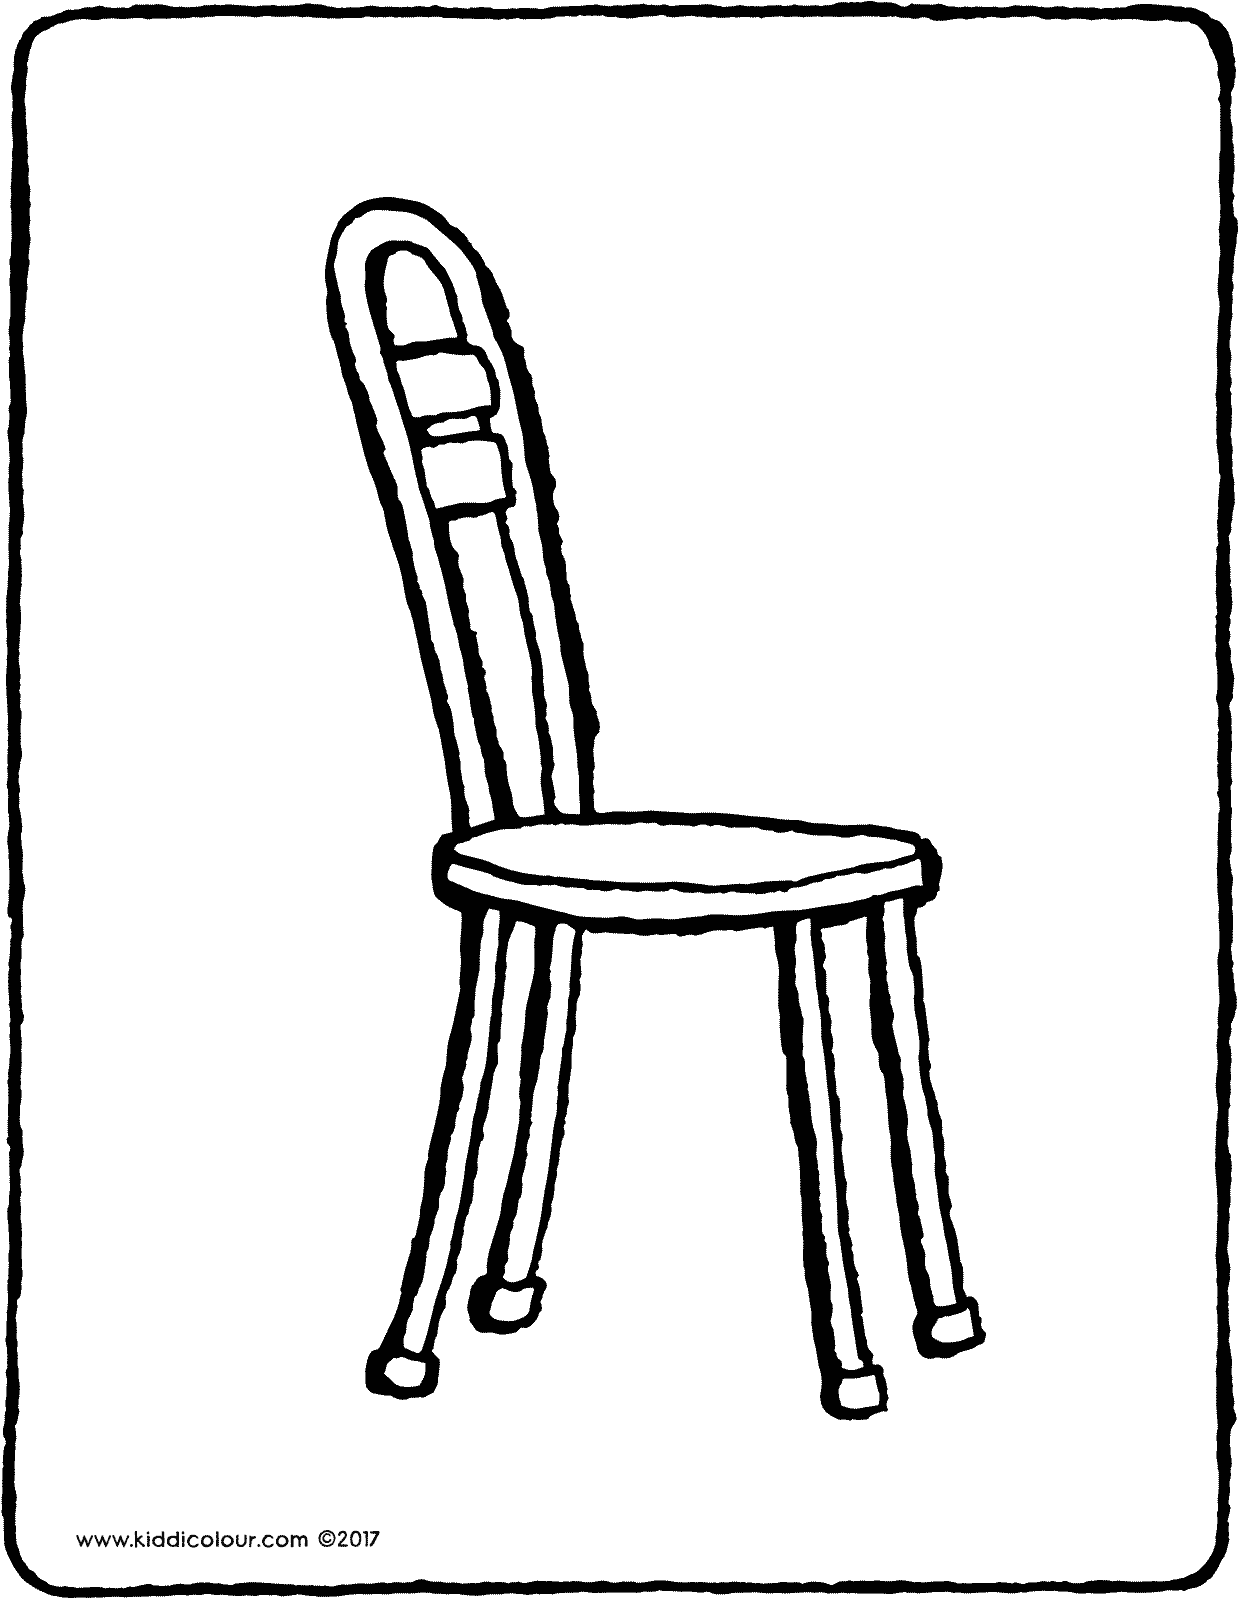 chair colouring page drawing picture 03V